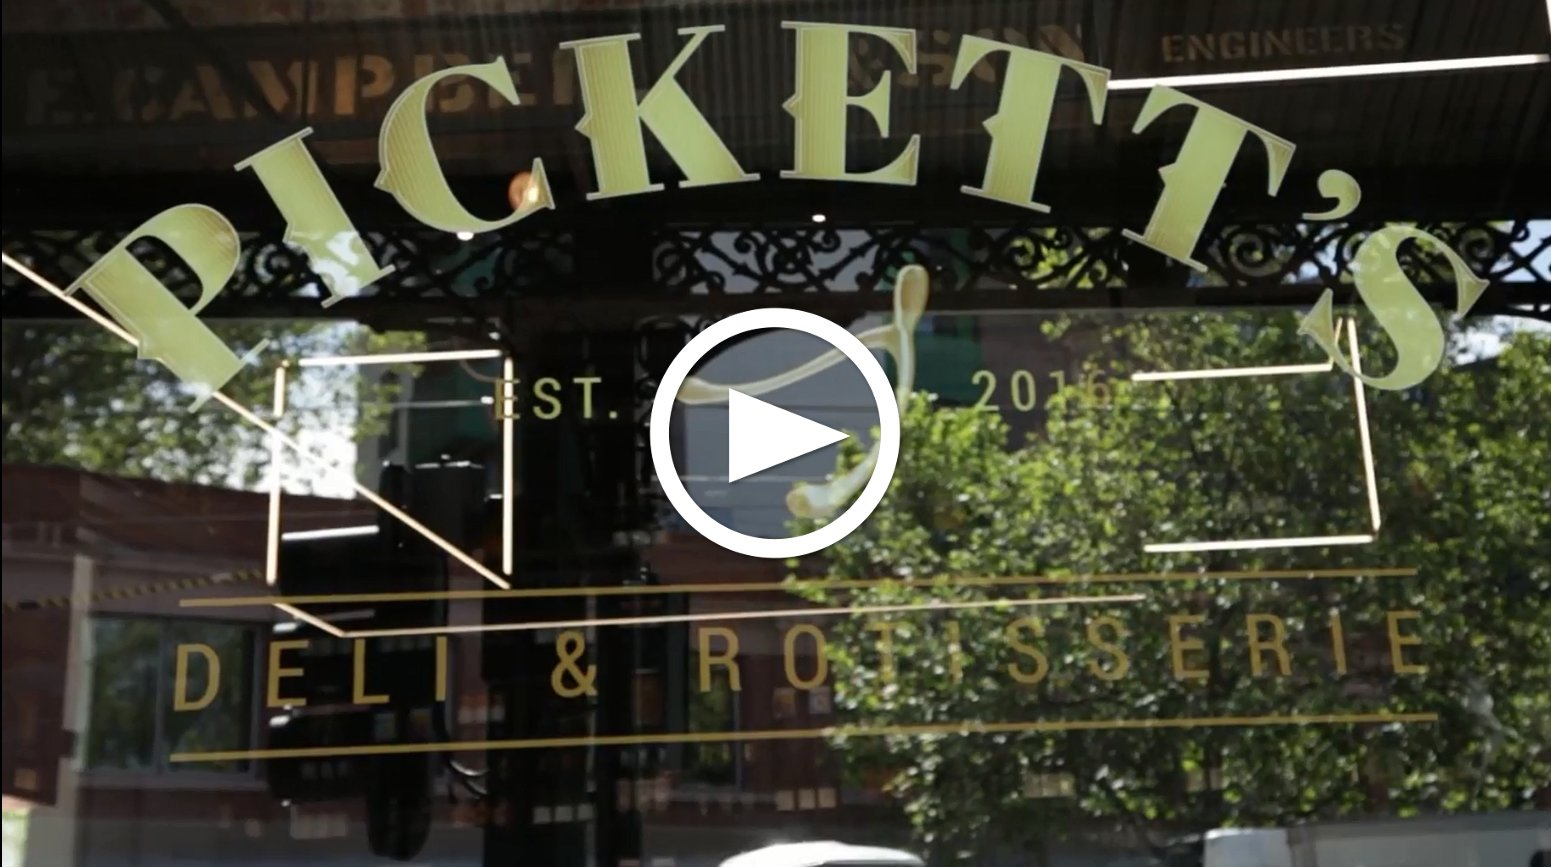 Picketts Deli & Rotisserie